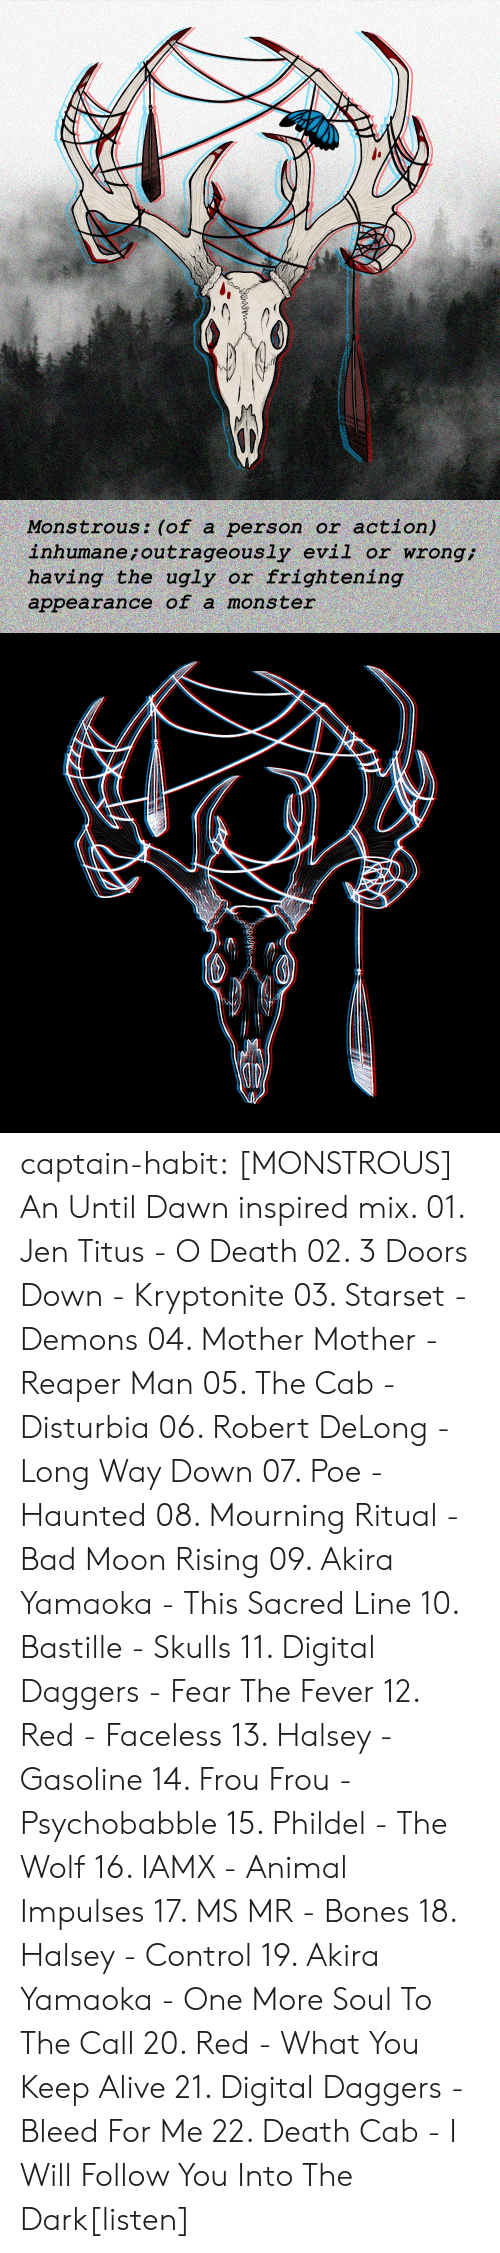 gasoline: action)  inhumane ; outrageously evil or wrong  having the ugly or frightening  Monstrous: (of a person or  appearance of a mons ter captain-habit:  [MONSTROUS] An Until Dawn inspired mix. 01. Jen Titus - O Death 02. 3 Doors Down - Kryptonite 03. Starset - Demons 04. Mother Mother - Reaper Man 05. The Cab - Disturbia 06. Robert DeLong - Long Way Down 07. Poe - Haunted  08. Mourning Ritual - Bad Moon Rising 09. Akira Yamaoka - This Sacred Line 10. Bastille - Skulls 11. Digital Daggers - Fear The Fever 12. Red - Faceless 13. Halsey - Gasoline  14. Frou Frou - Psychobabble  15. Phildel - The Wolf 16. IAMX - Animal Impulses 17. MS MR - Bones 18. Halsey - Control 19. Akira Yamaoka - One More Soul To The Call 20. Red - What You Keep Alive 21. Digital Daggers - Bleed For Me 22. Death Cab - I Will Follow You Into The Dark[listen]